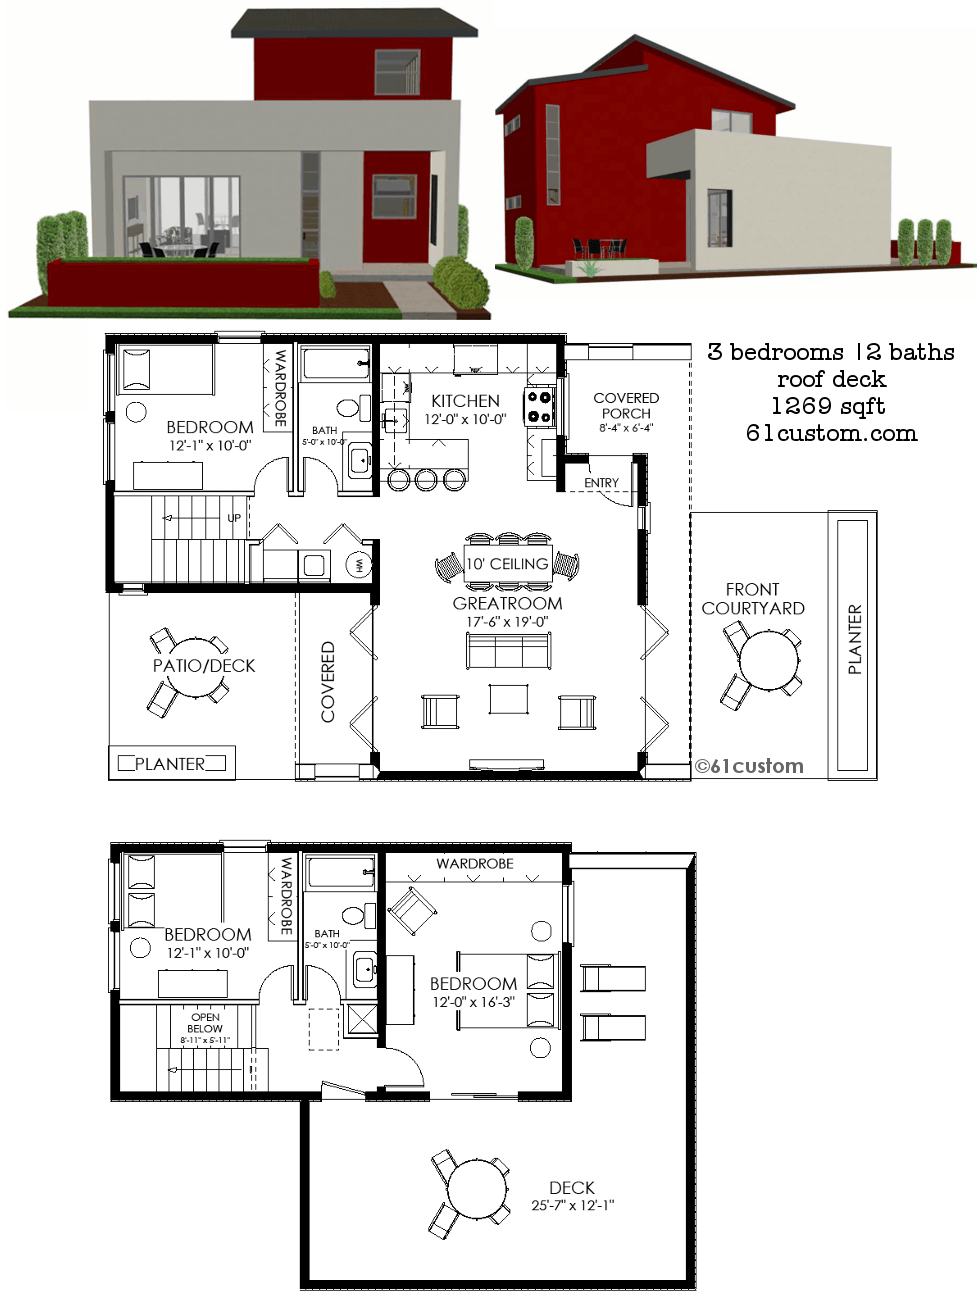 Modern house plans floor plans contemporary home plans for Contemporary home plans